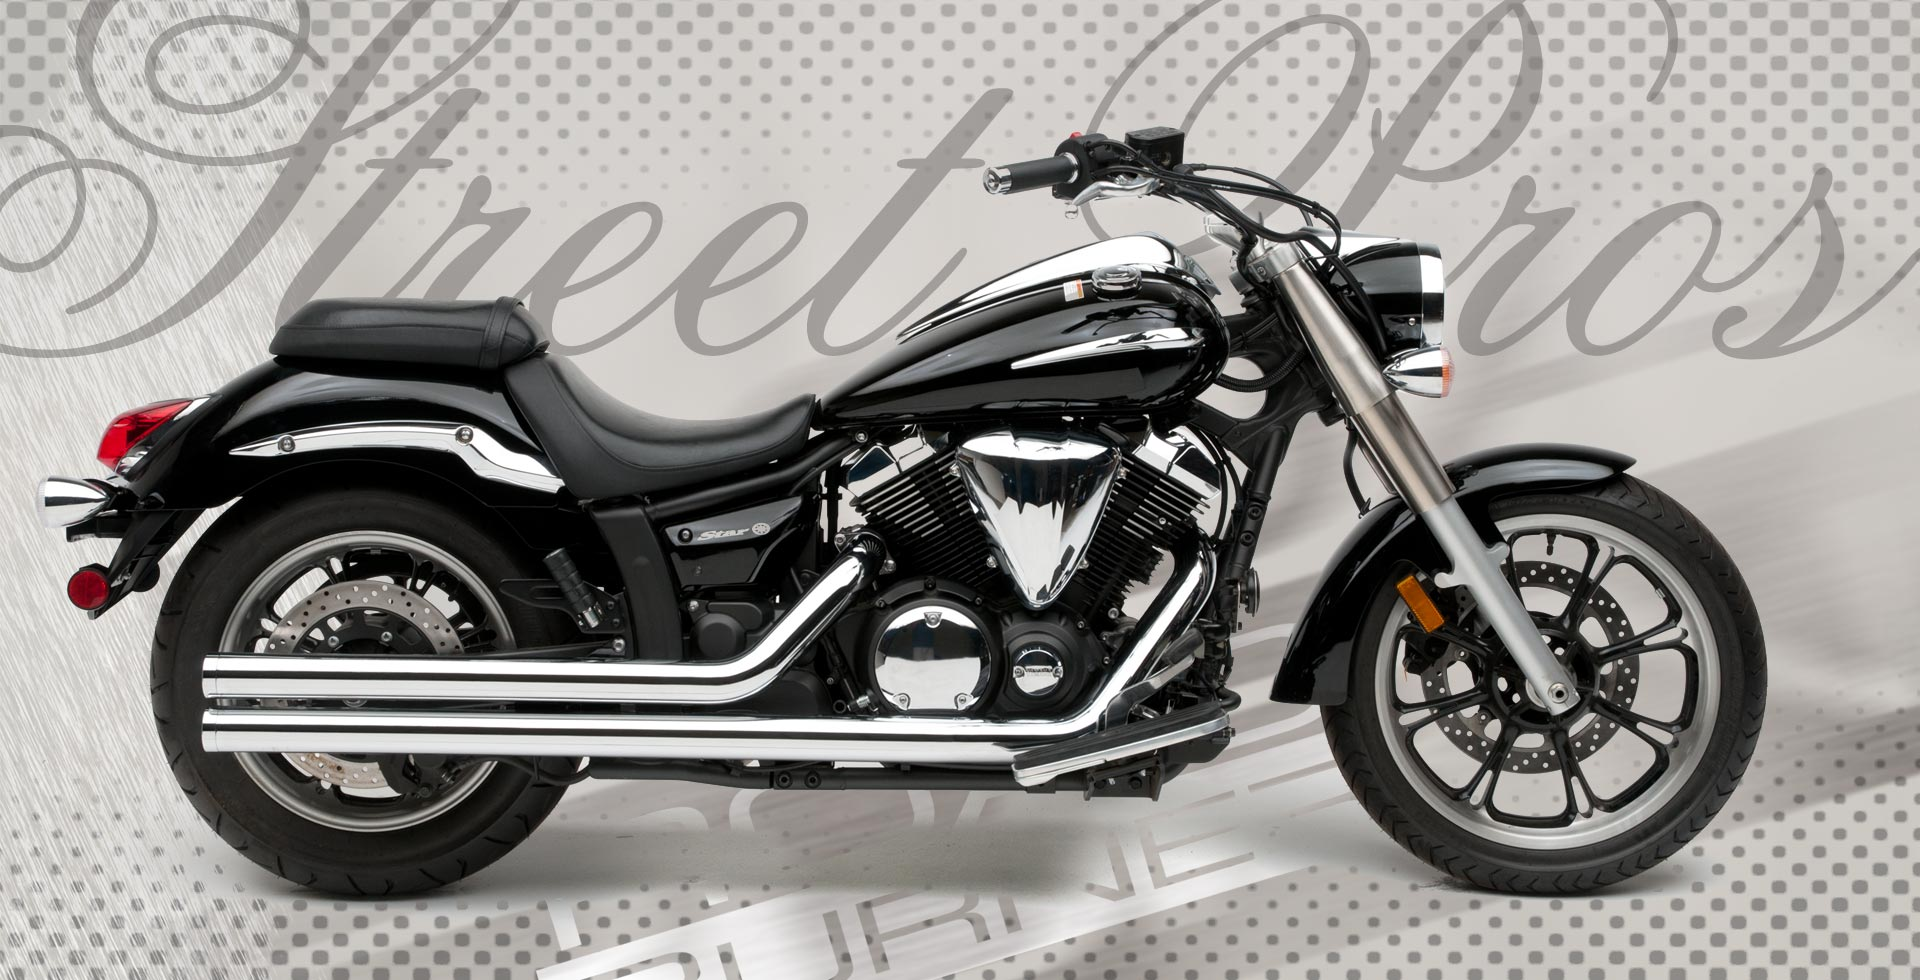 v star 1100 pro street with Motorcycle Exhaust on Harley Davison Motorcycles new as well 1484 Hypercharger Kit Yamaha Road Star moreover 3285 Drzaky Brasen Yamaha Drag Star 650 Classic together with Picture bike as well Yamaha Motorcycles For Sale 546 48.